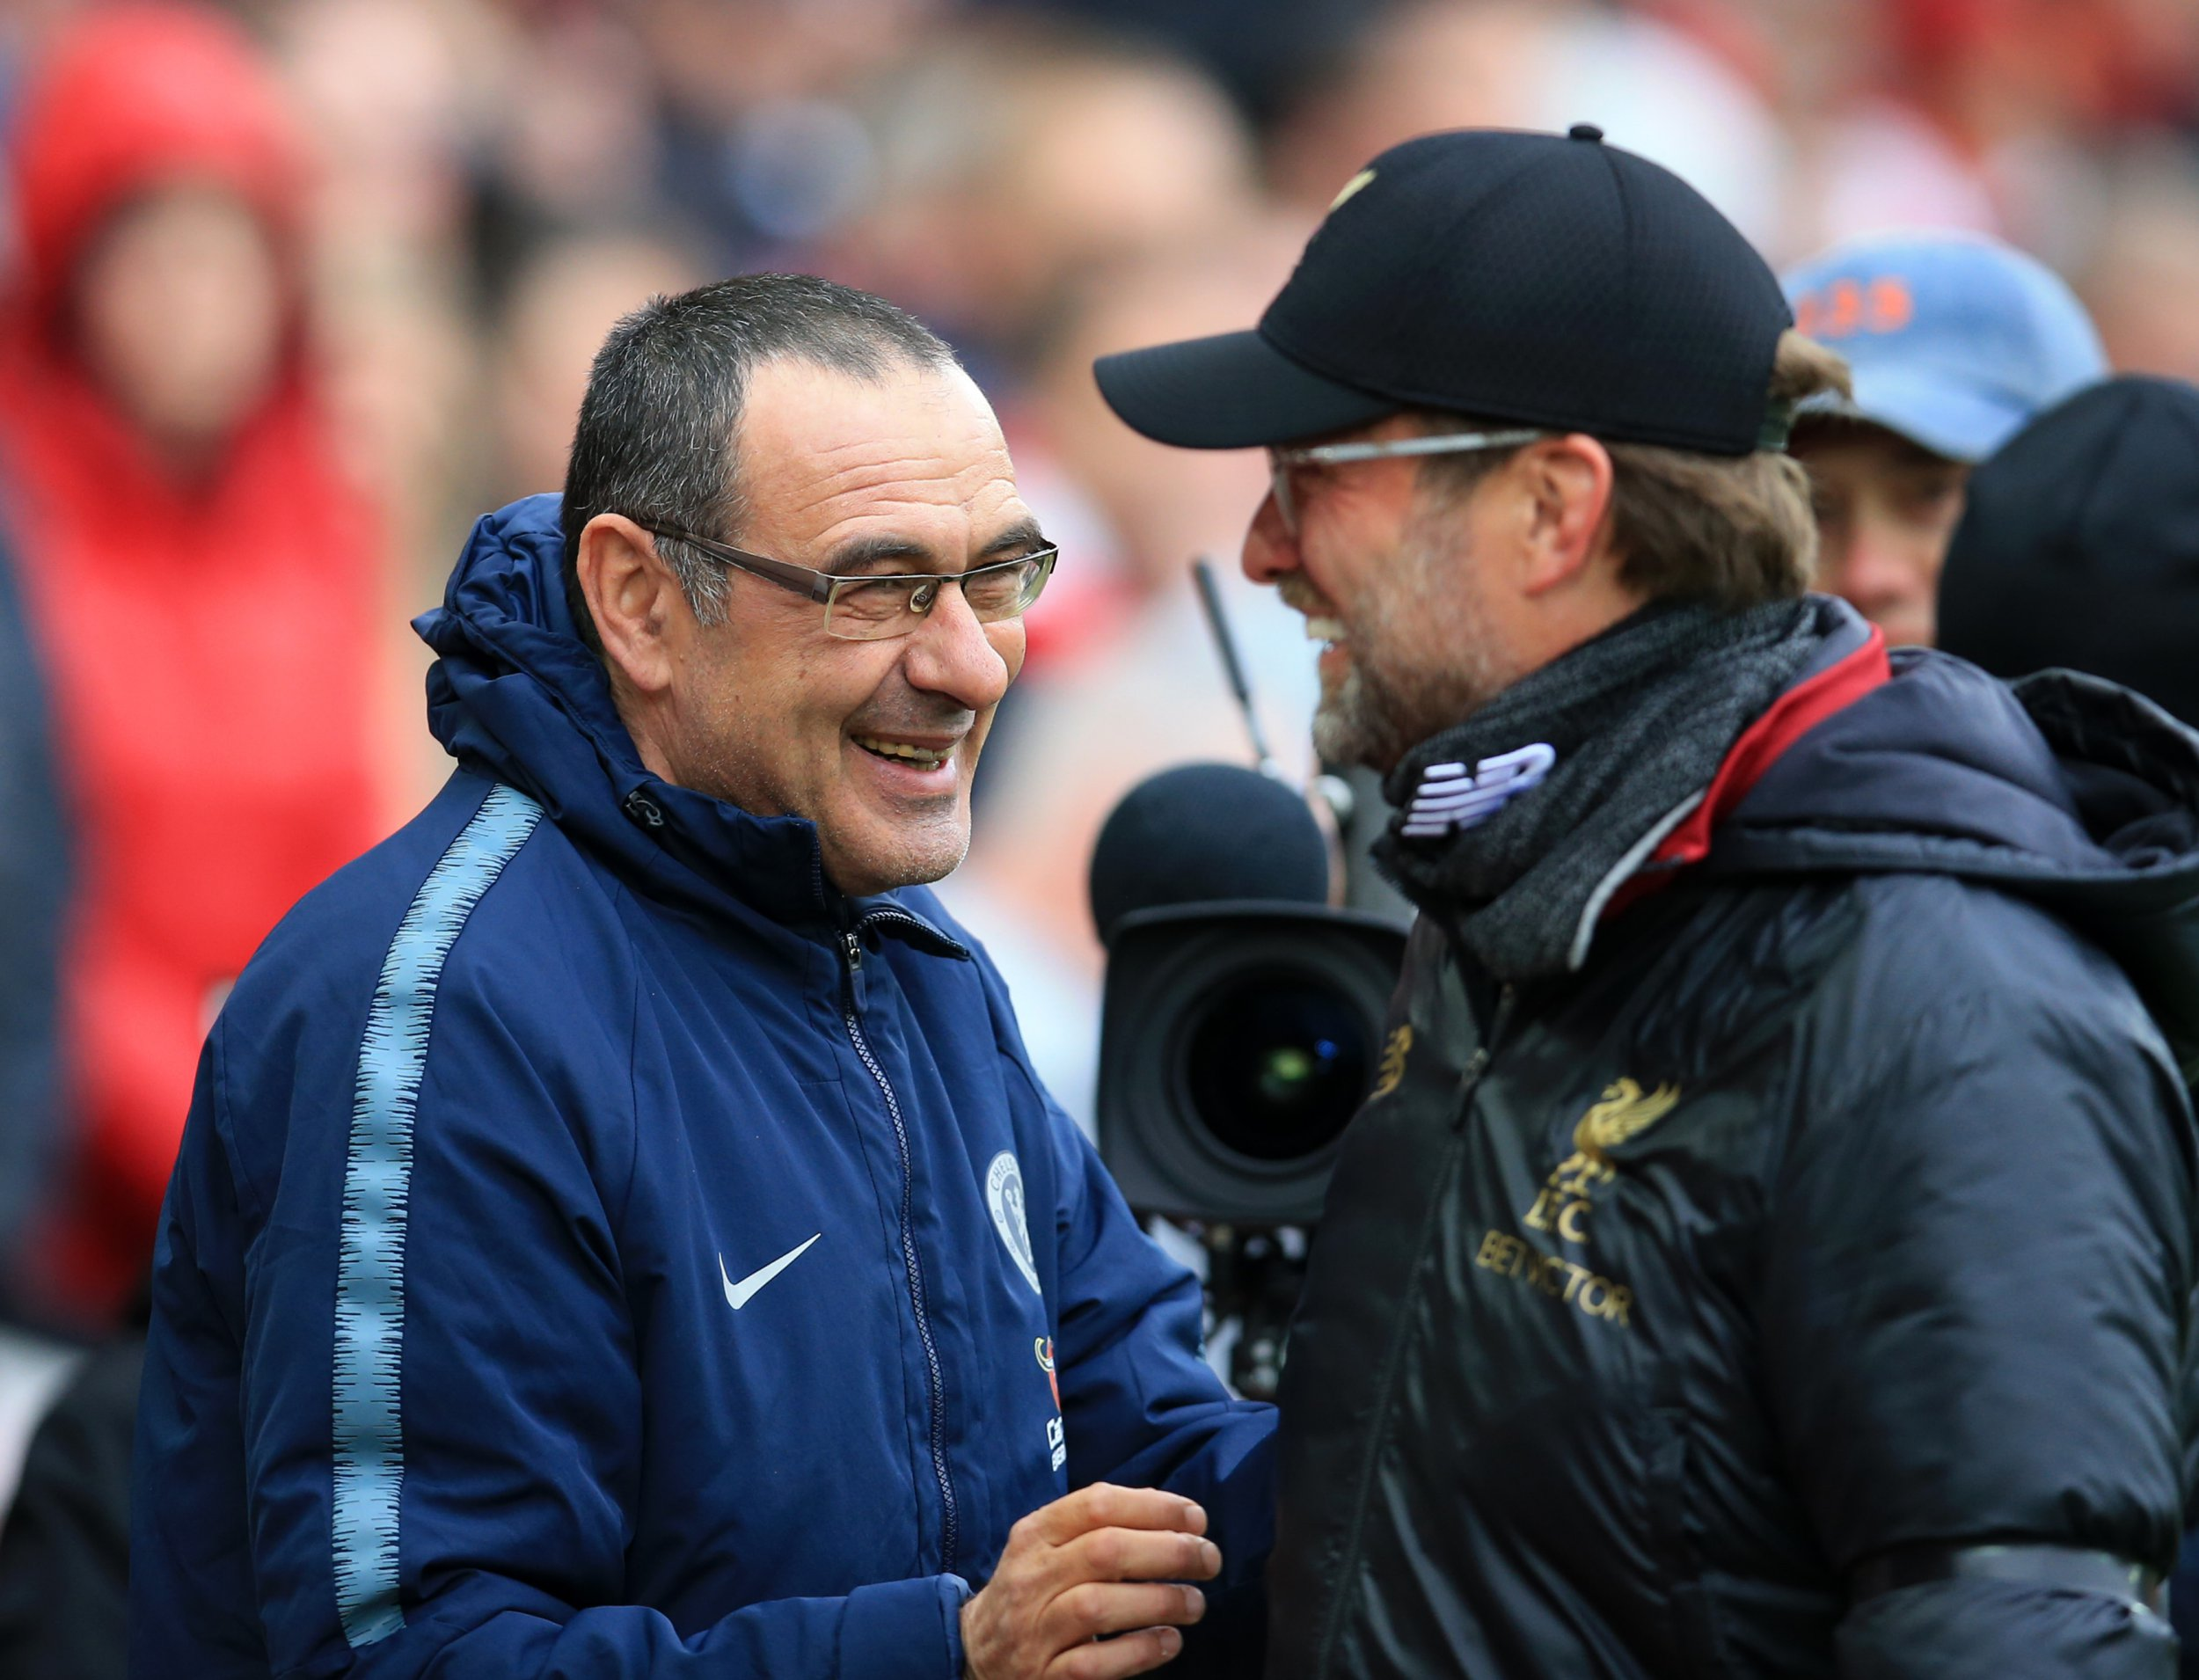 Maurizio Sarri predicts Premier League title race after Chelsea's defeat to Liverpool